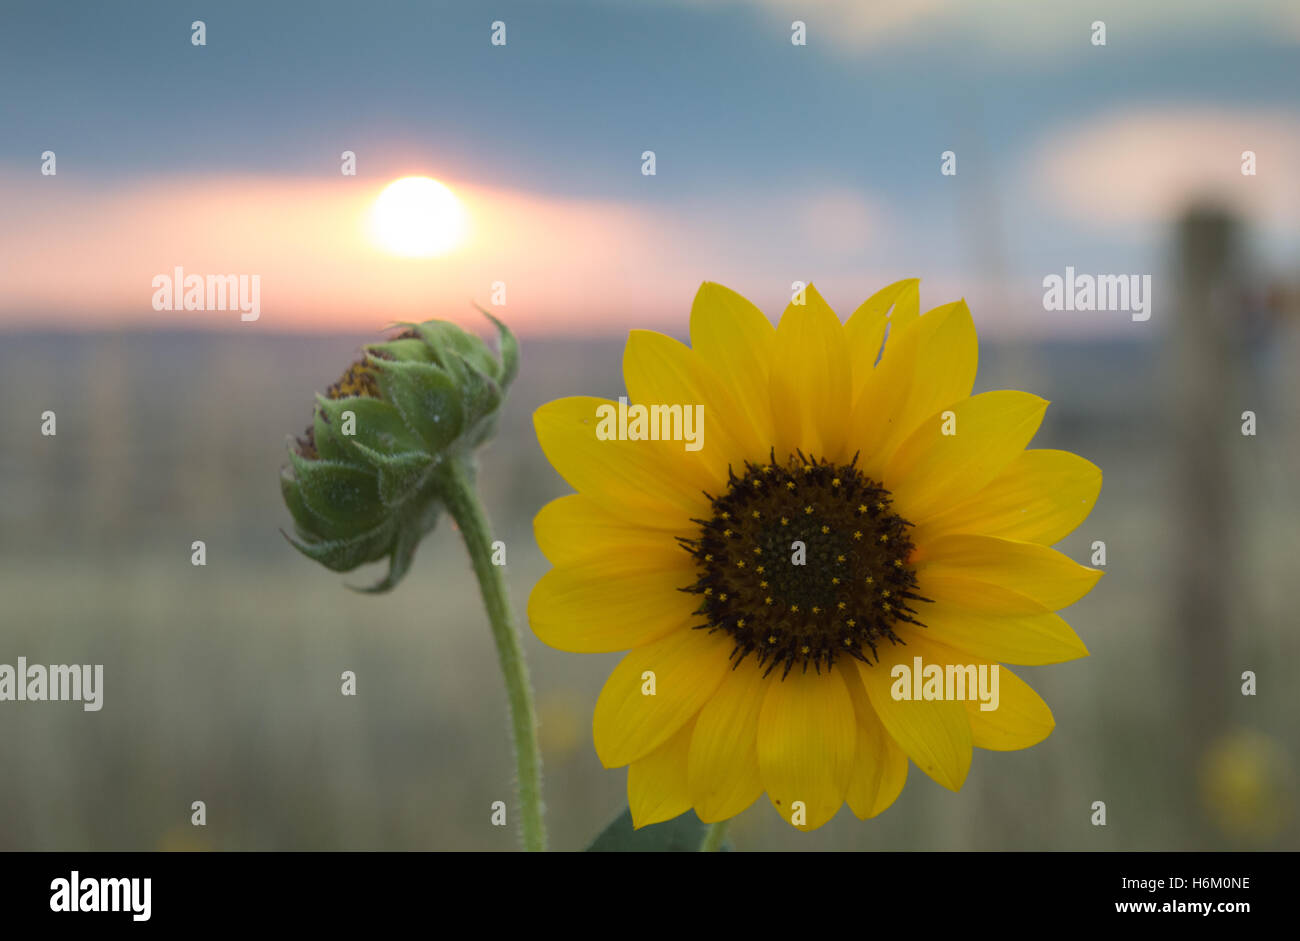 Close Up of a Prairie Sunflower and Bud with a Fence Post, Field and Sunrise in the Background - Stock Image